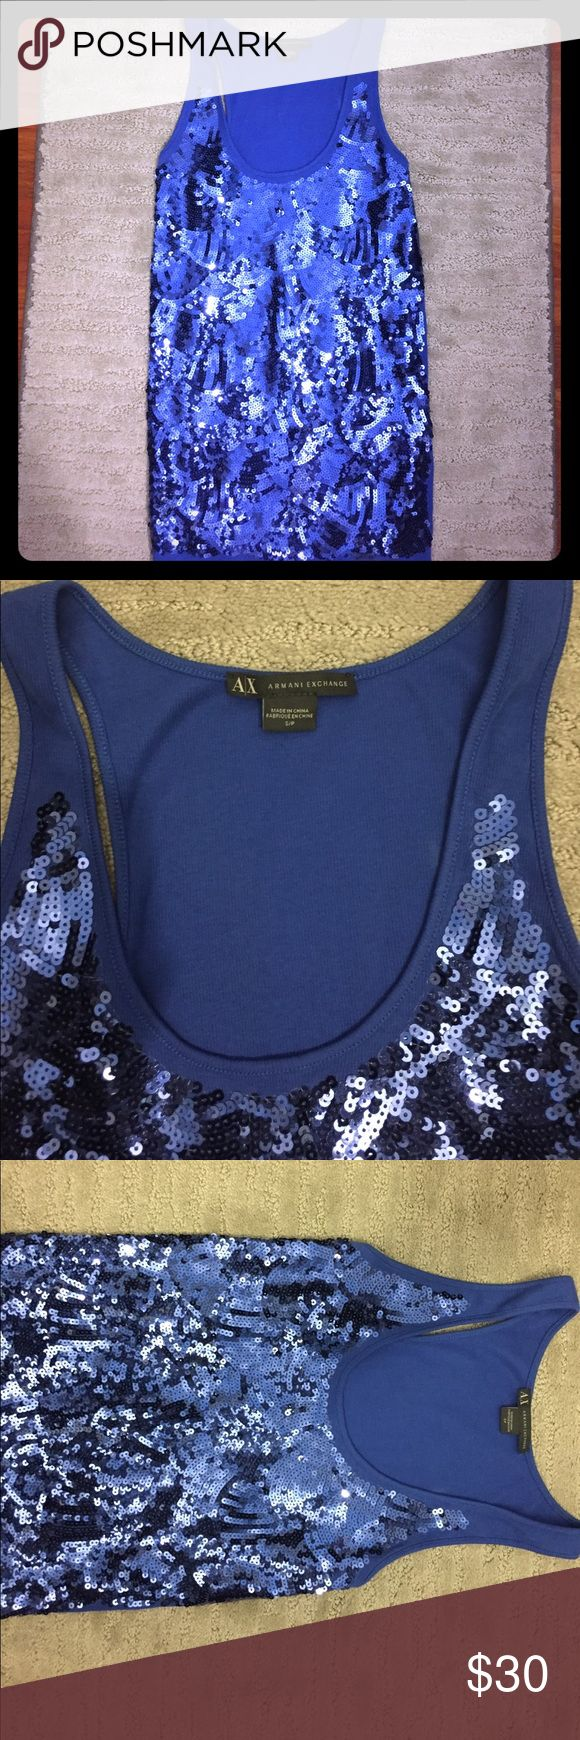 Armani Exchange sequin top Stunning Armani Exchange sequin tank top. The entire front of tank is covered in beautiful deep blue sequins that catch the light and really looks amazing for any special night out. It looks amazing with jeans or a black leggings and some heels. The scoop neck is flattering and allows room for showcasing your jewelry! Barely worn (2 times) and in mint condition. This top is a size s/p. It is 95% cotton and 5% spandex.  A gorgeous addition to any closet 😀! Armani…